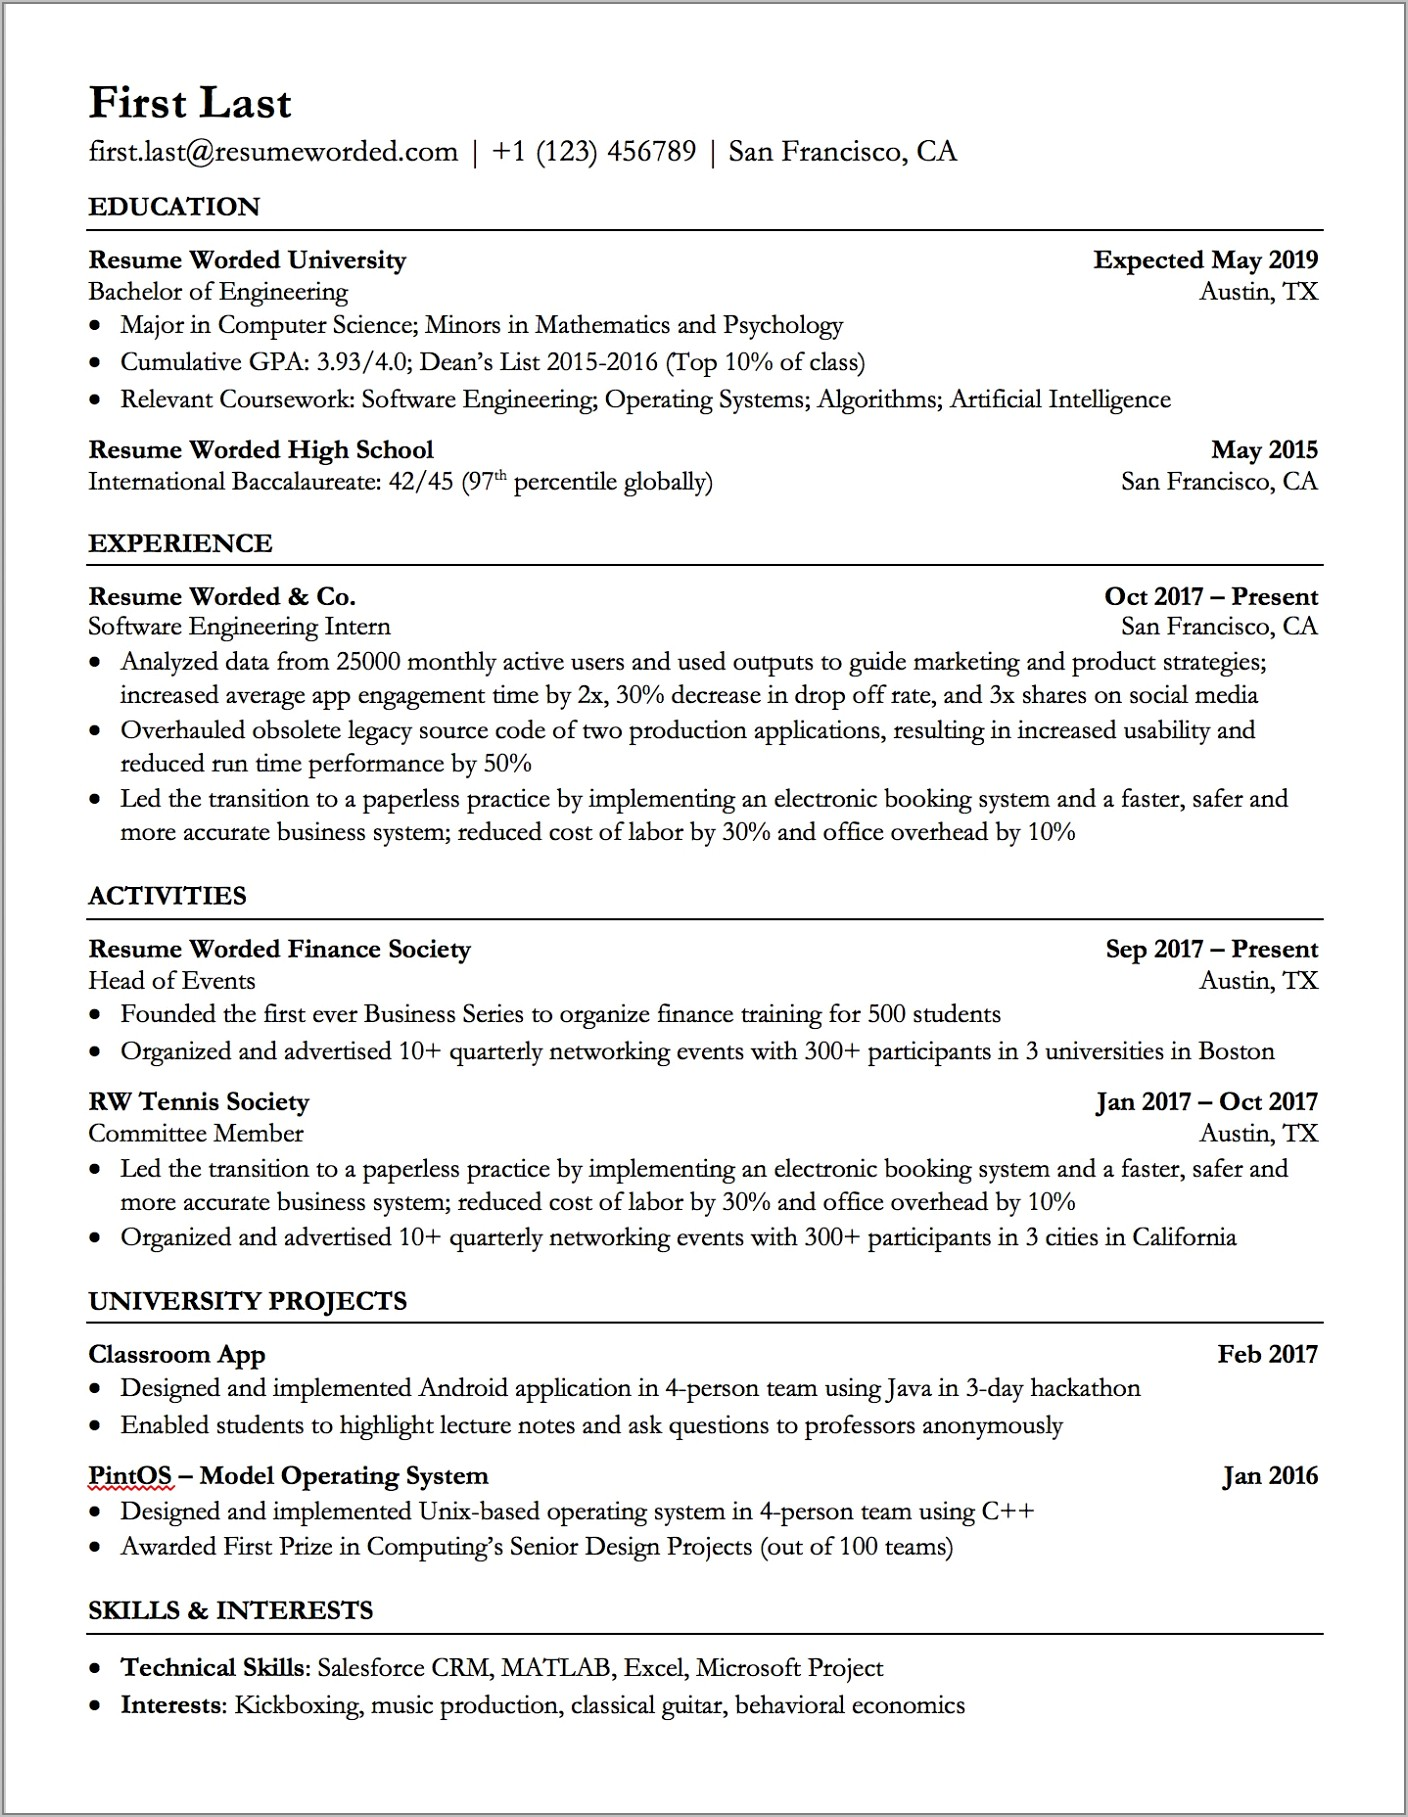 Template For Professional Resume In Word